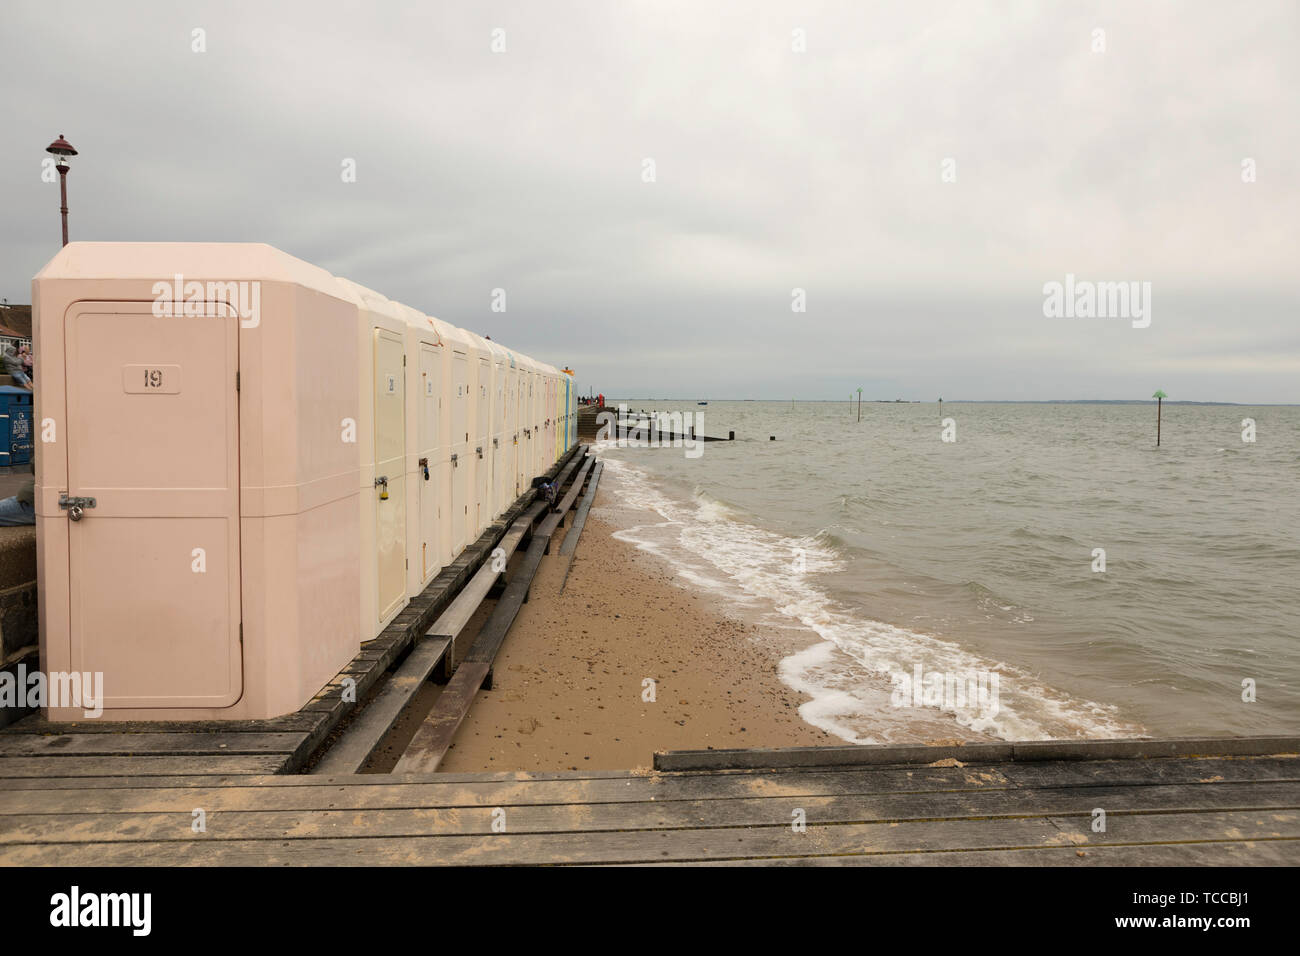 Southend on Sea, UK. 5th June, 2019. Beach changing cubicles giving swimmers and beach users the chance to get changed at the beach in privacy. - Stock Image